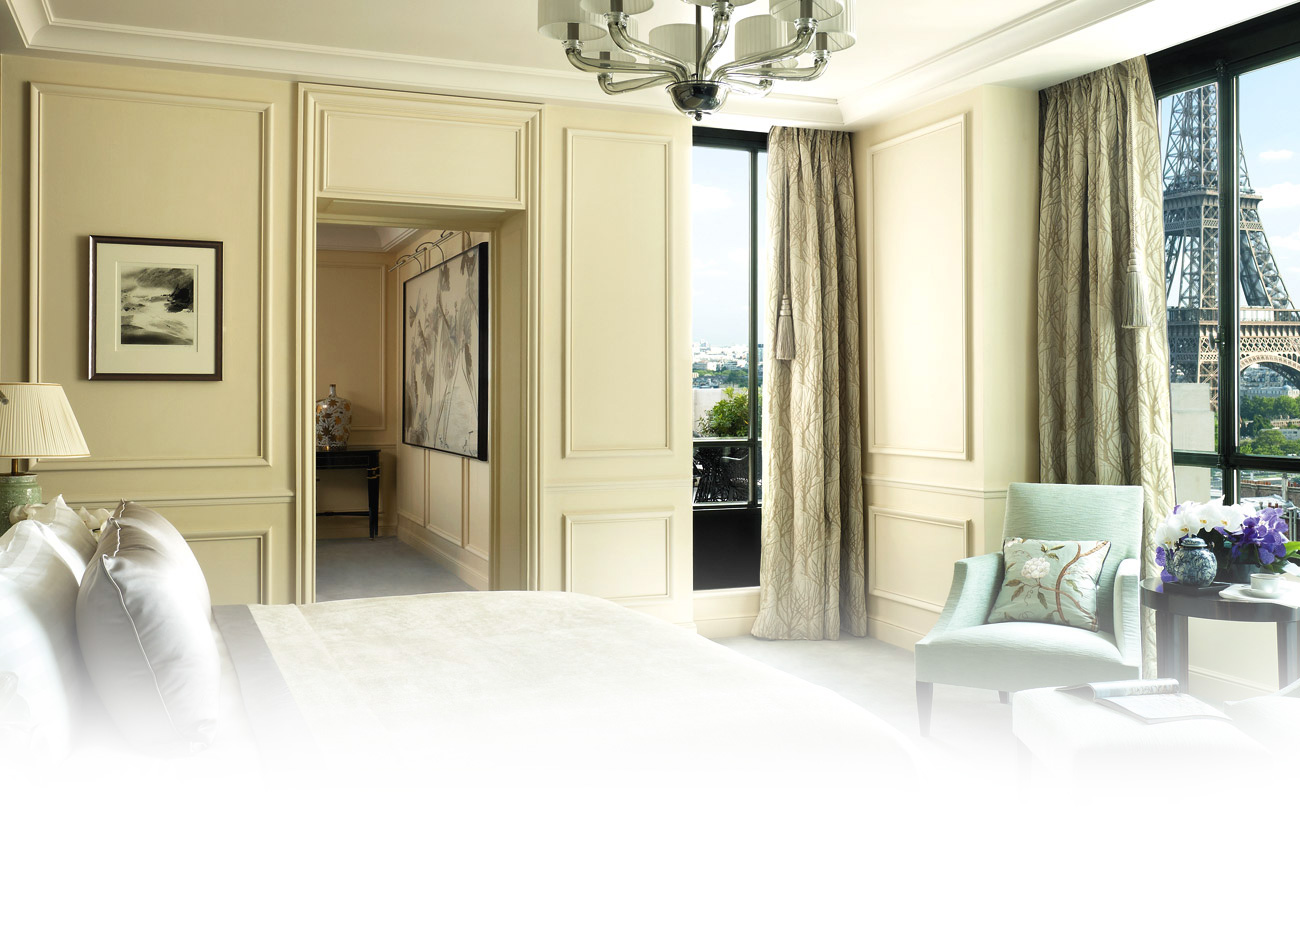 SLPR-Bg-Rooms-Suites-La-Suite-Chaillot